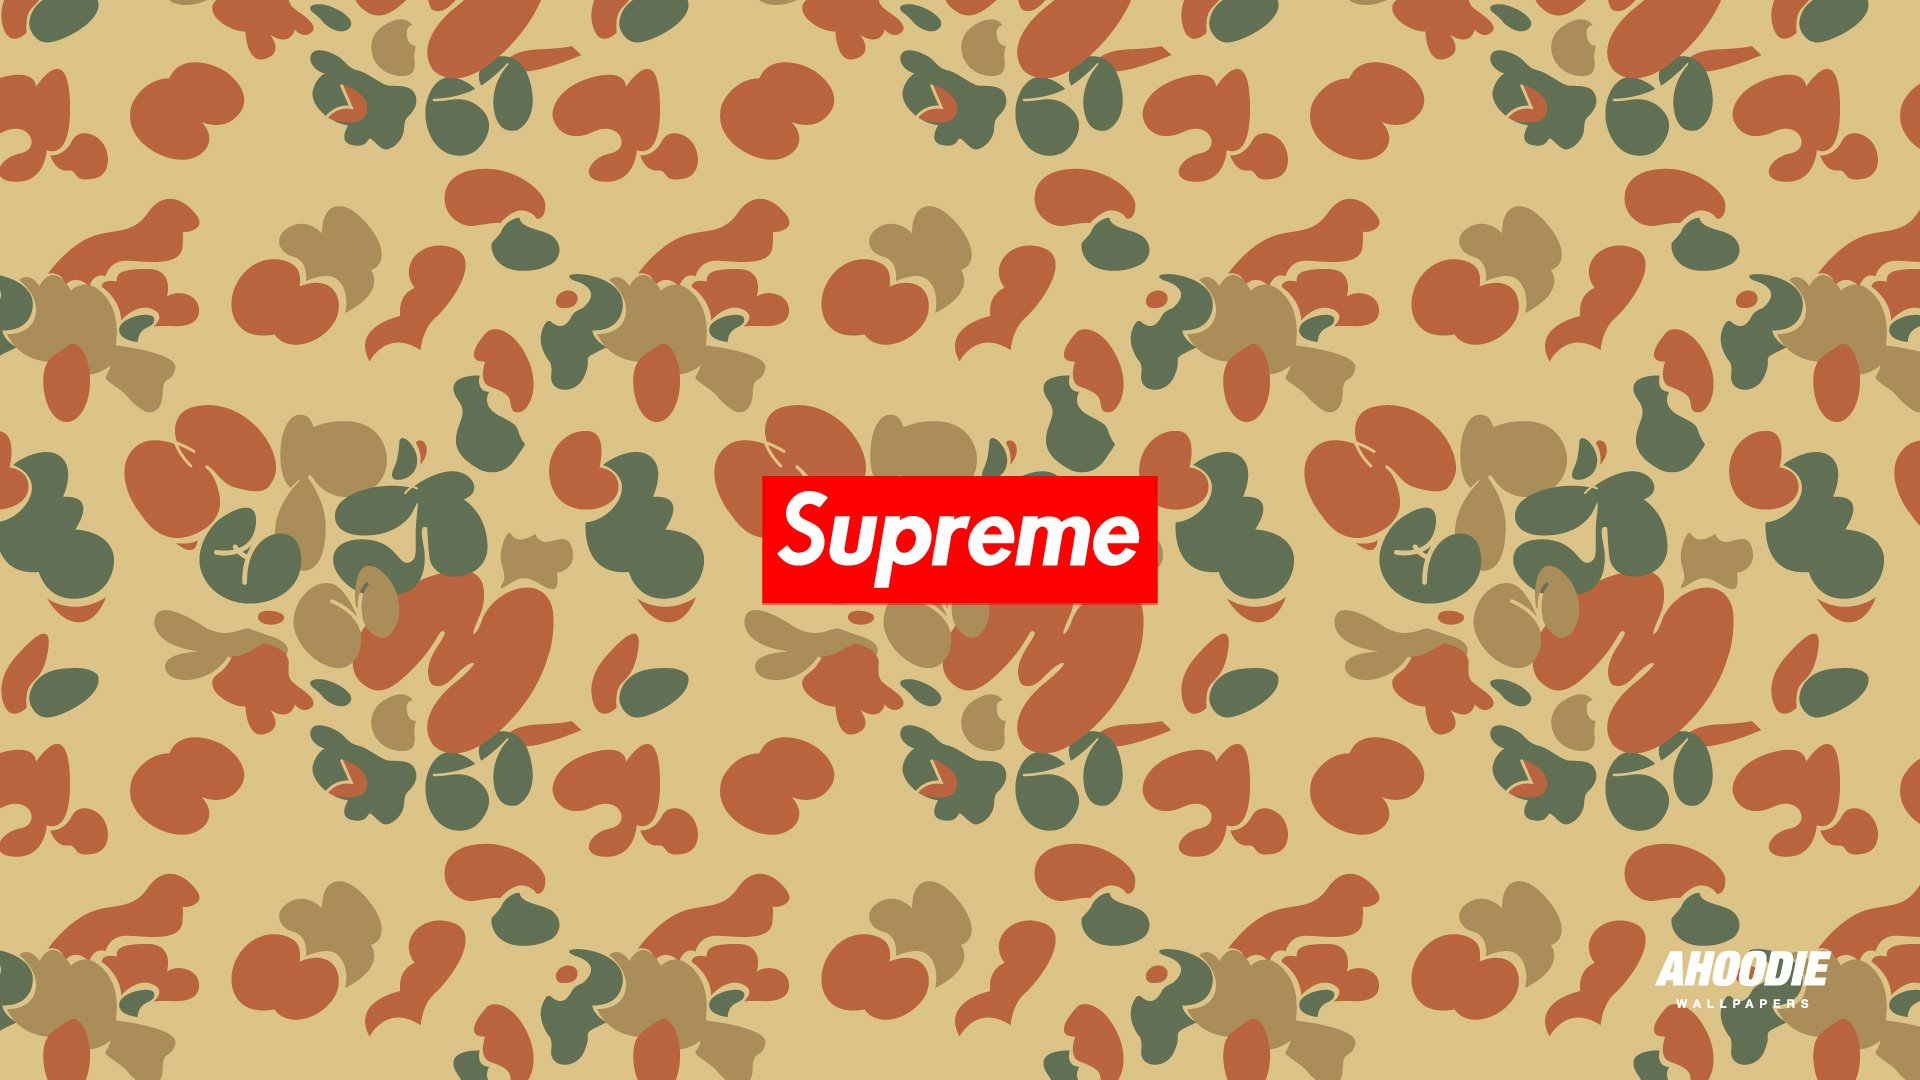 Supreme E Shop Europe WATM Magazine 1920x1080